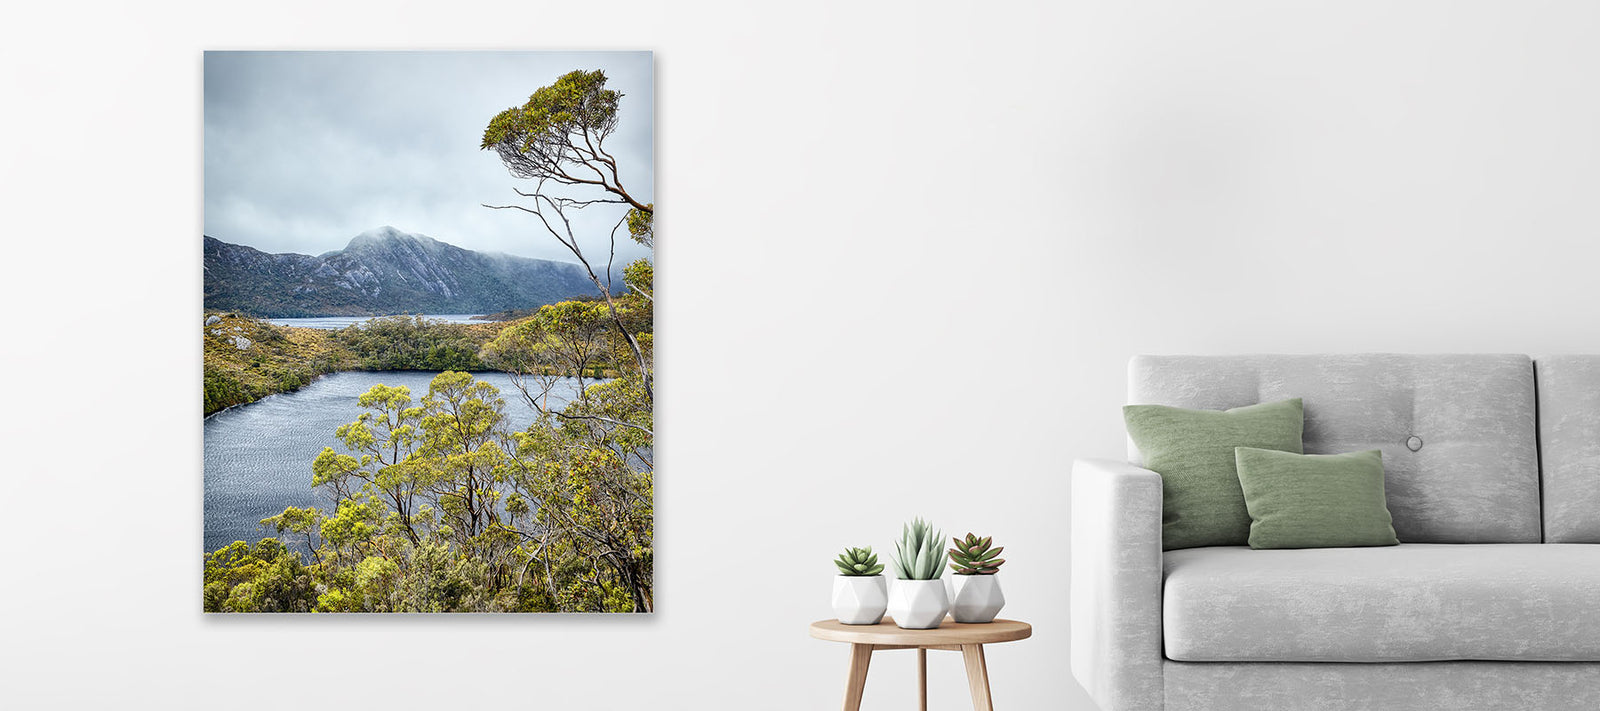 Scott leggo shop australian landscape photography wall art